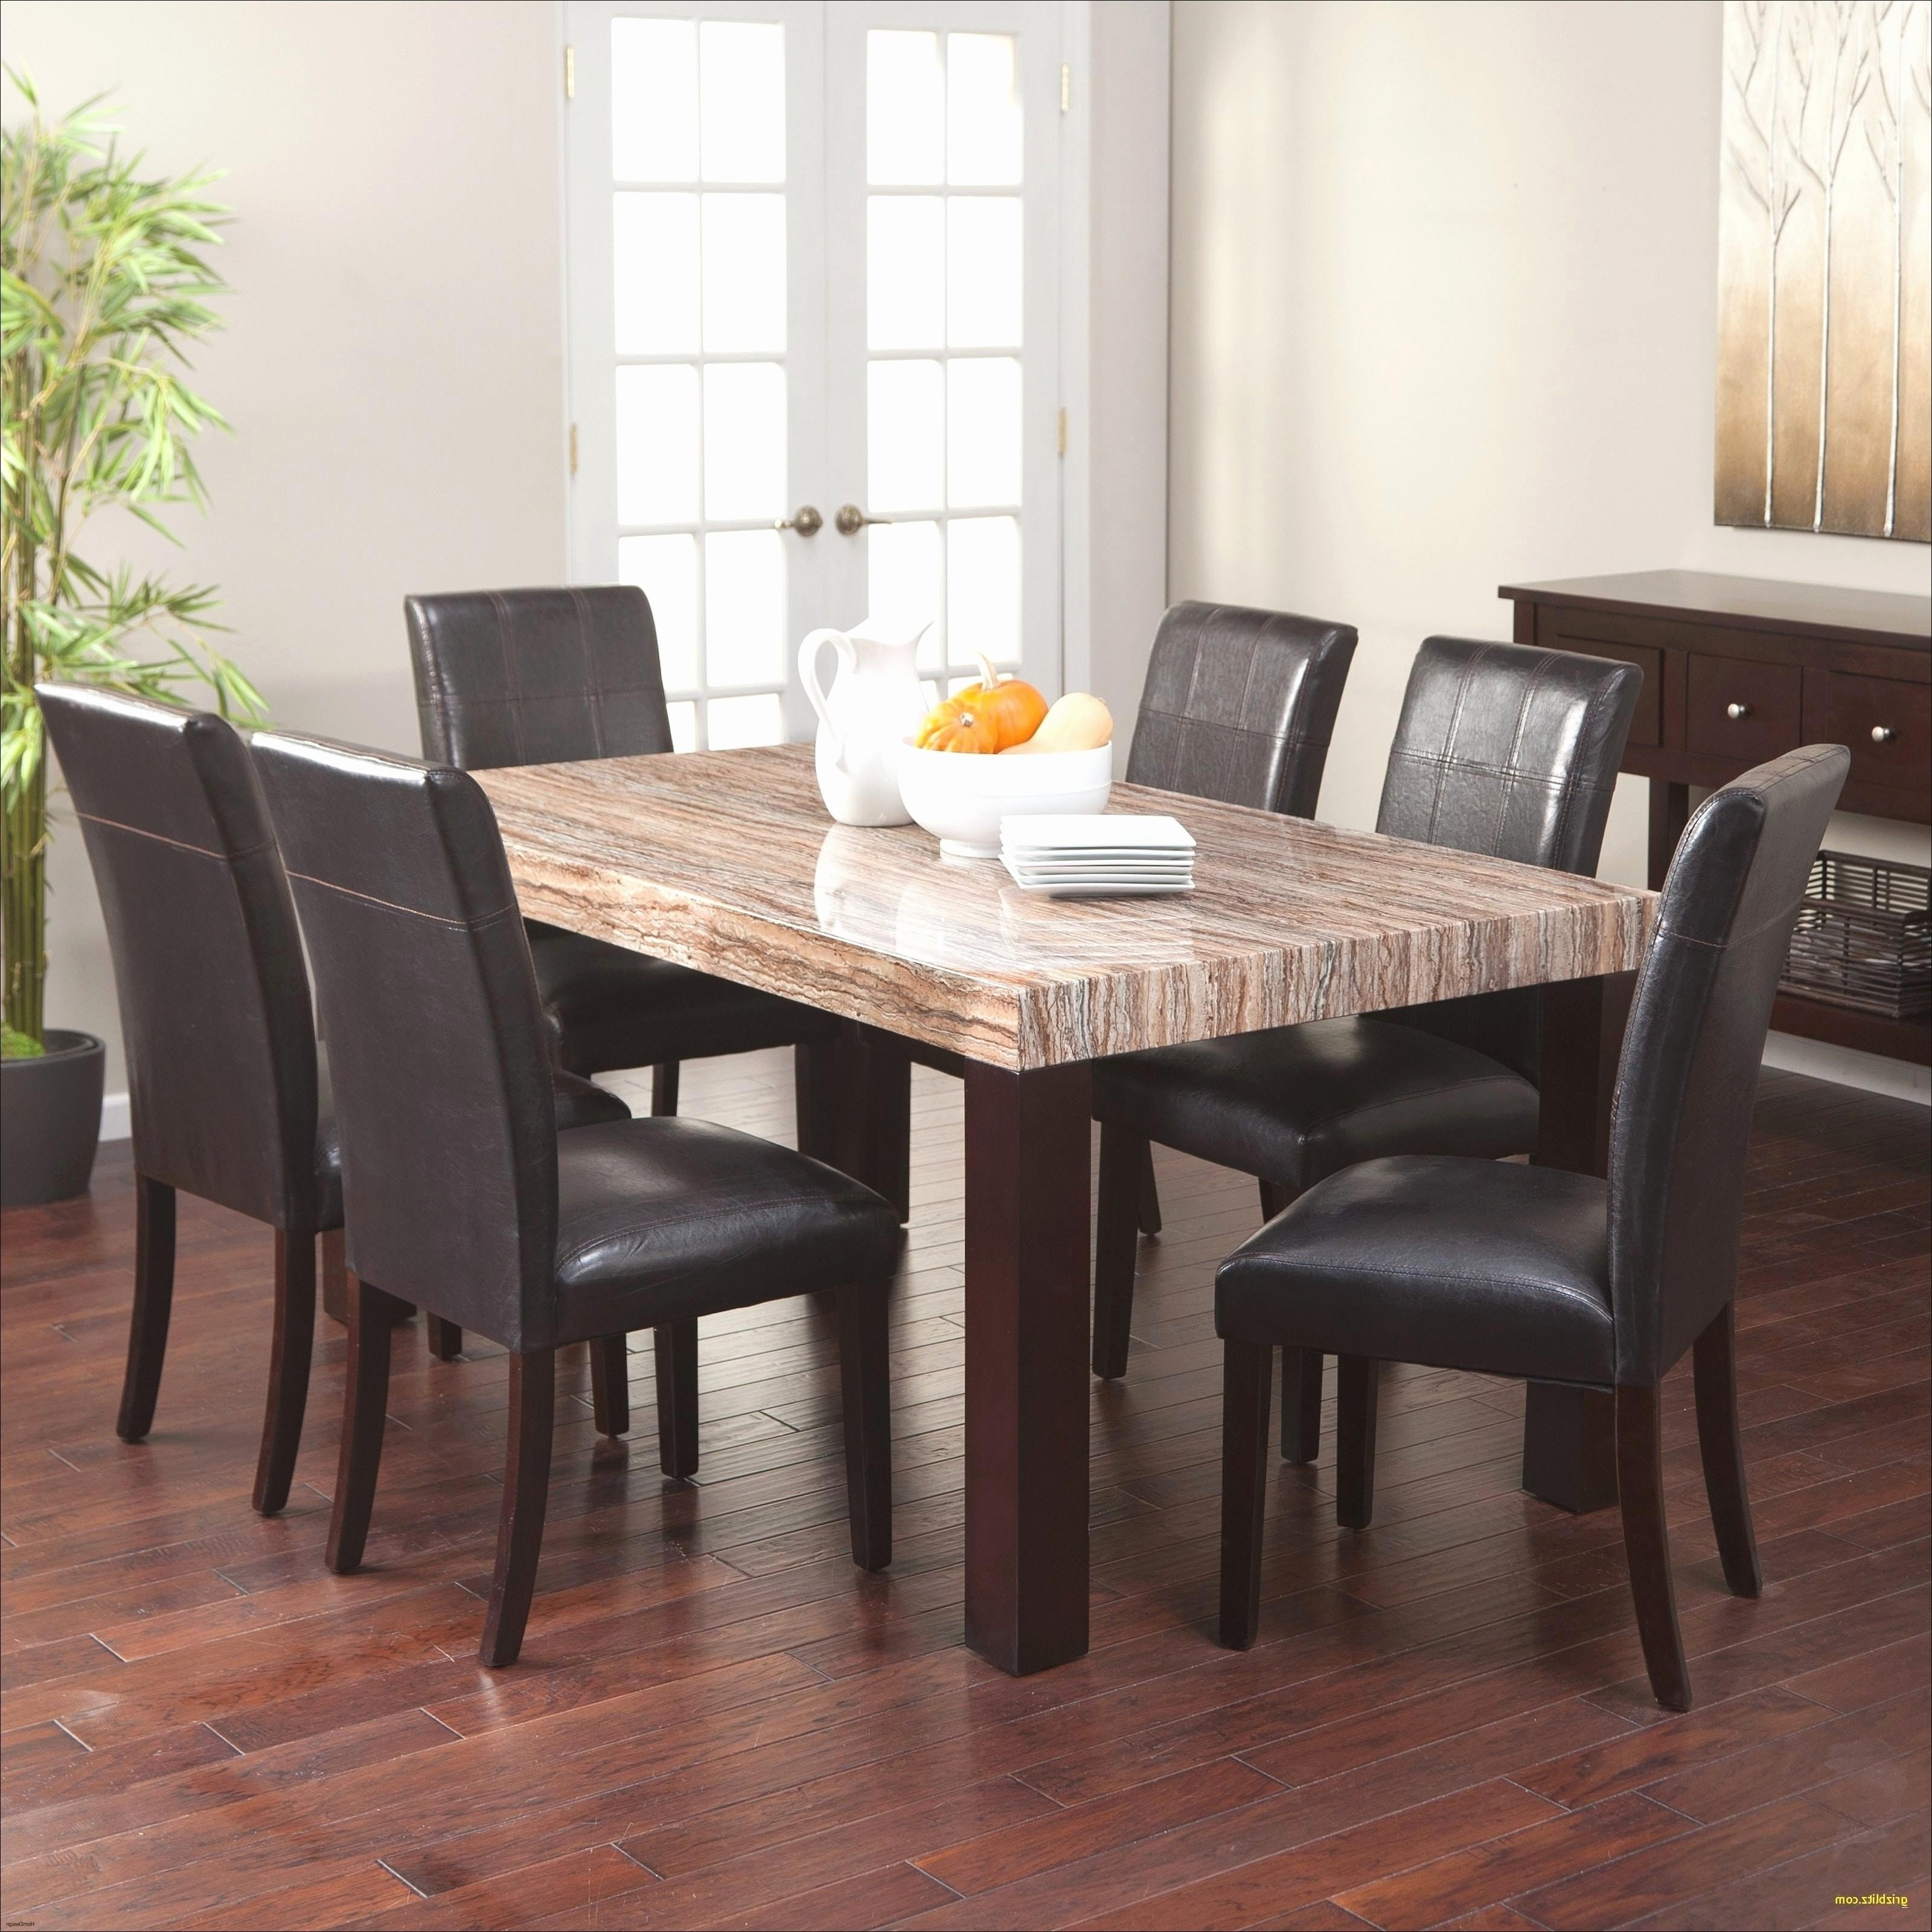 Popular Round Glass Dining Table Sets For 4 Luxury Rectangular Glass Dining Pertaining To Dining Table Sets (View 18 of 25)